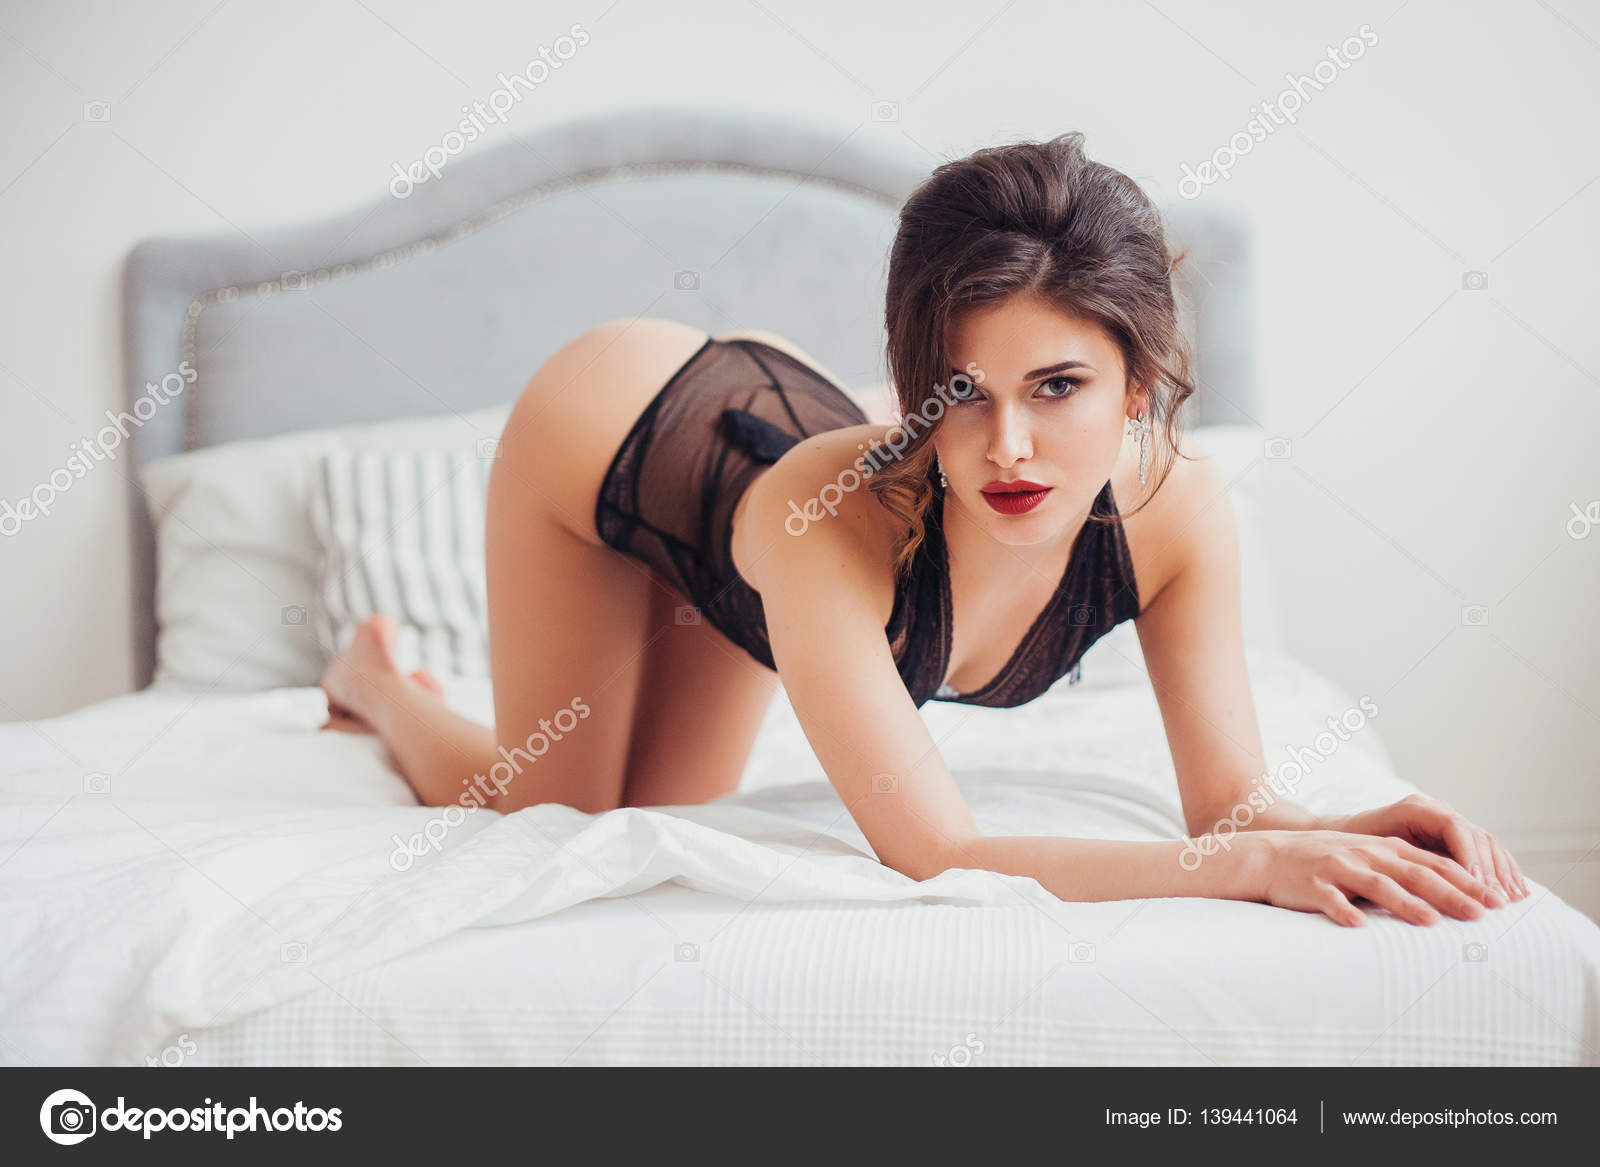 In lingerie photo posing woman